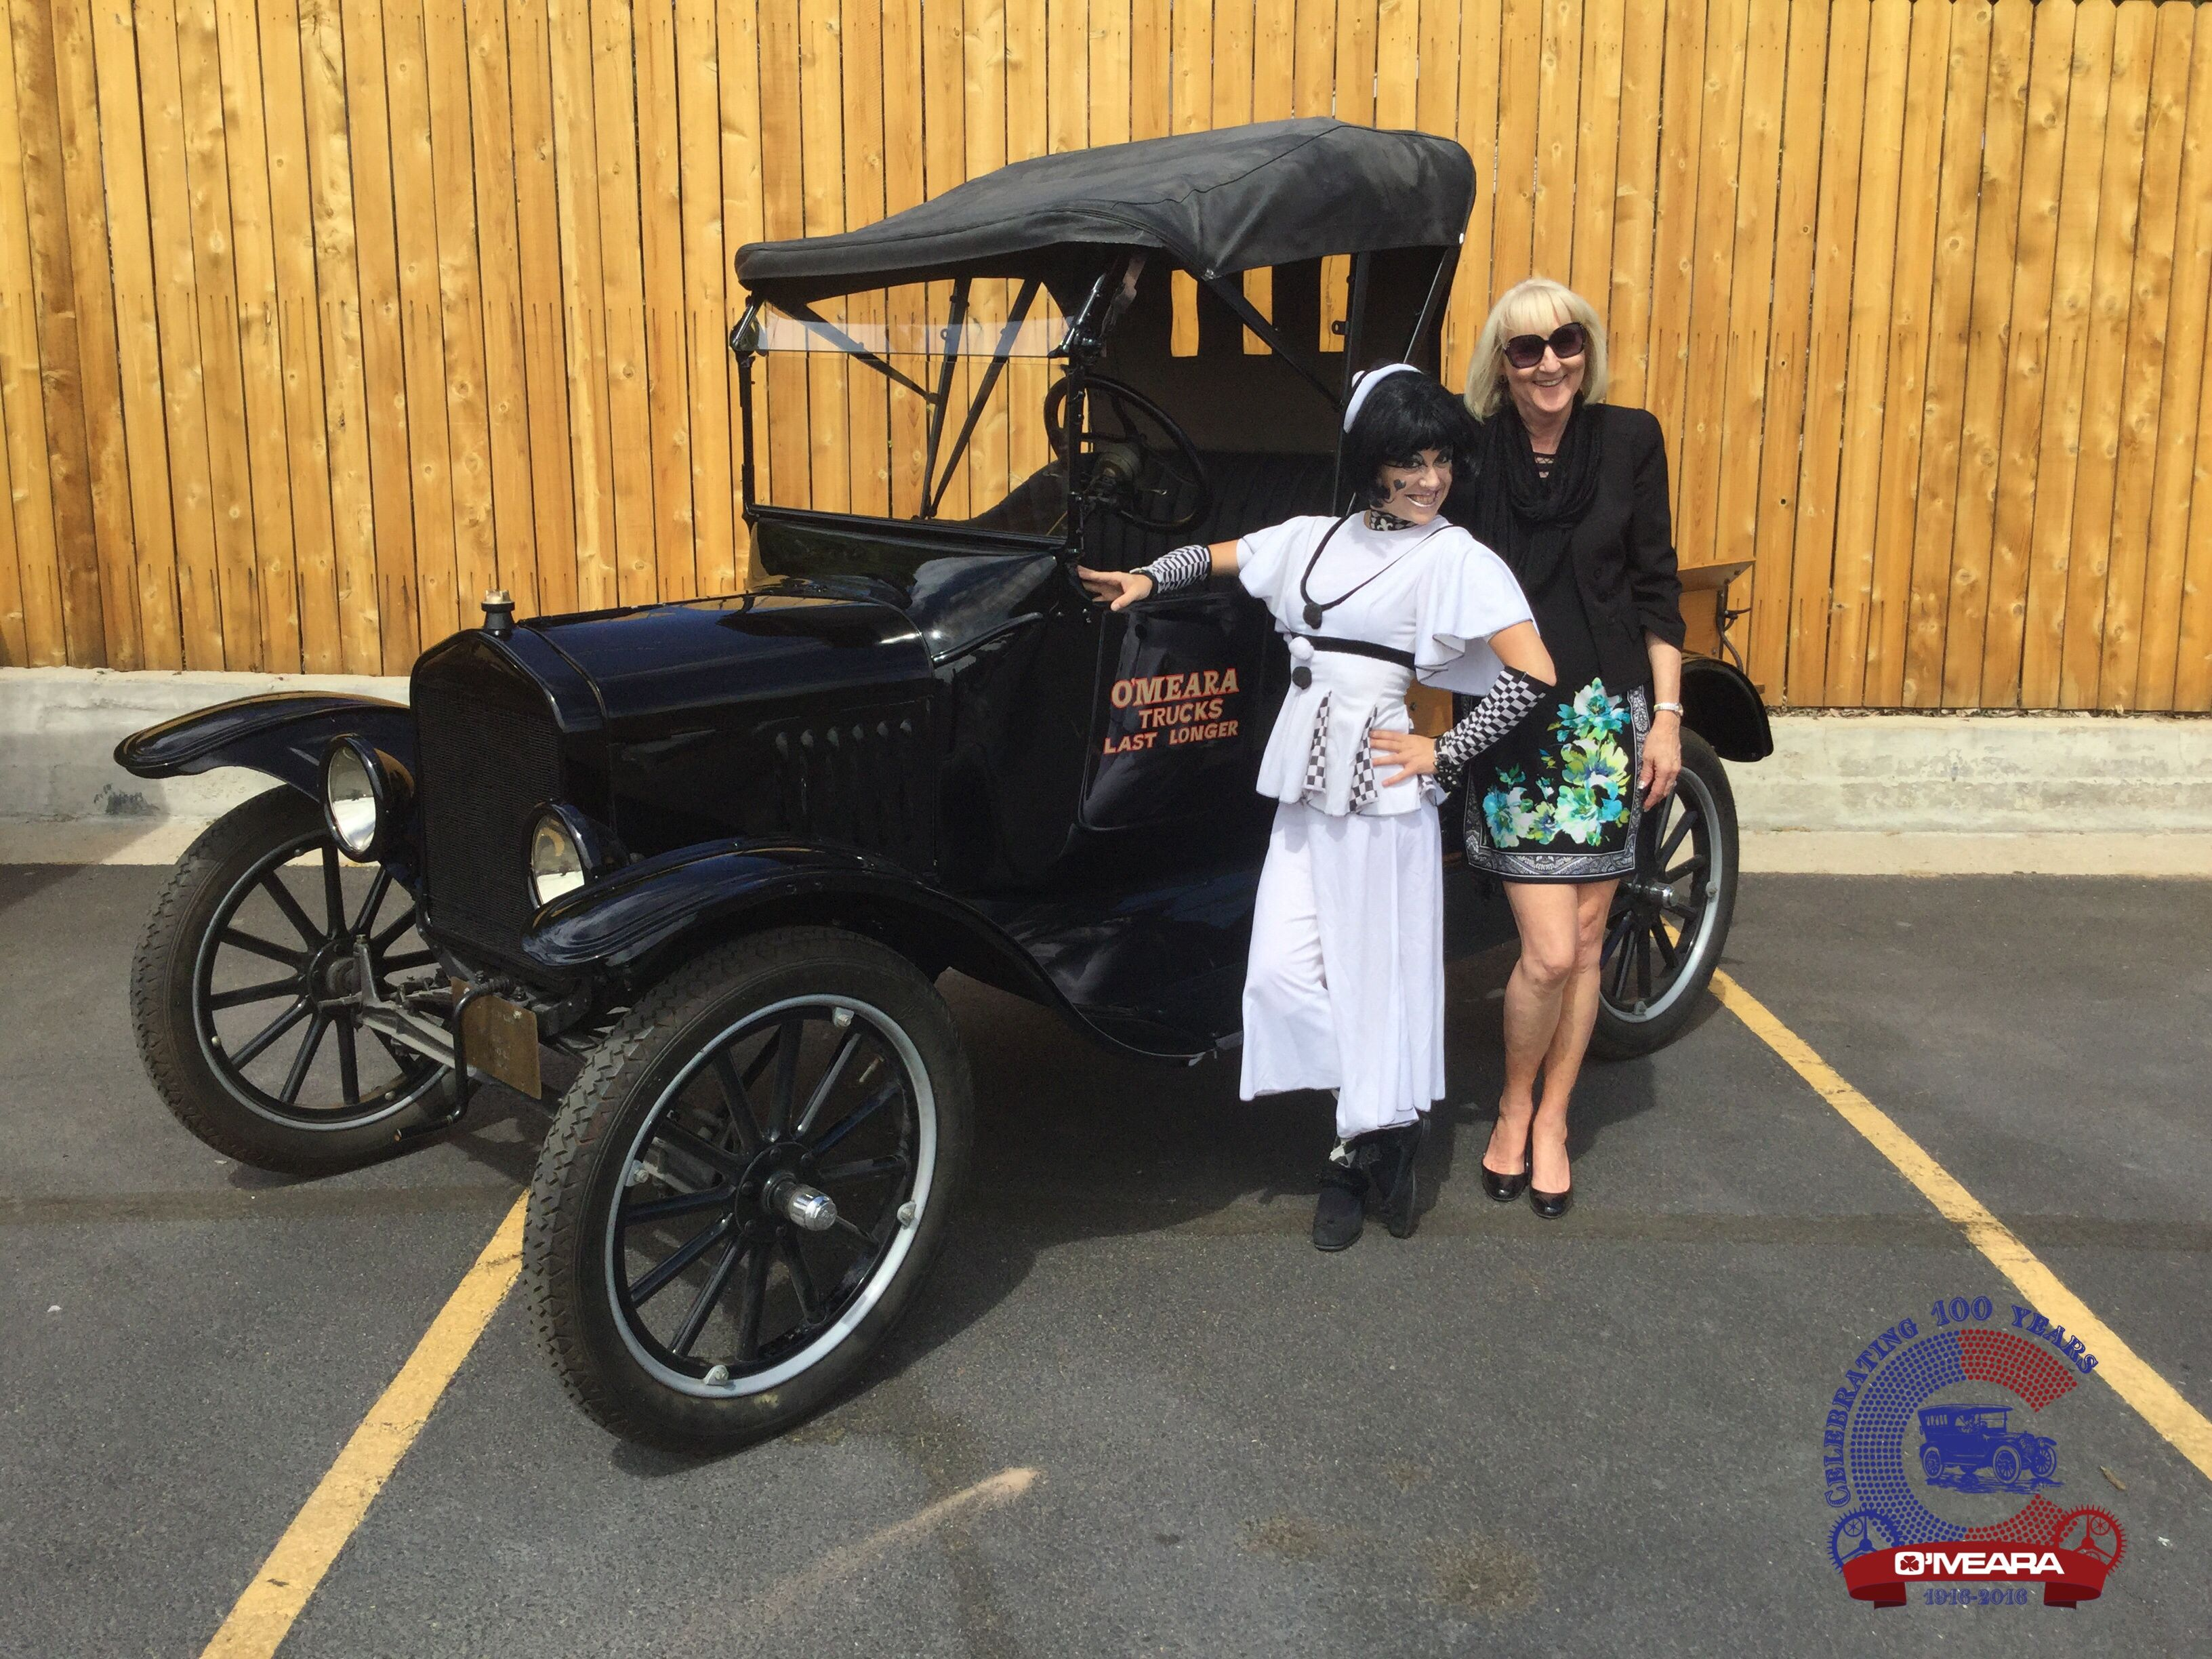 Thornton Goodwill provides vintage clothing for O'Mera Ford's 100th Anniversary celebration